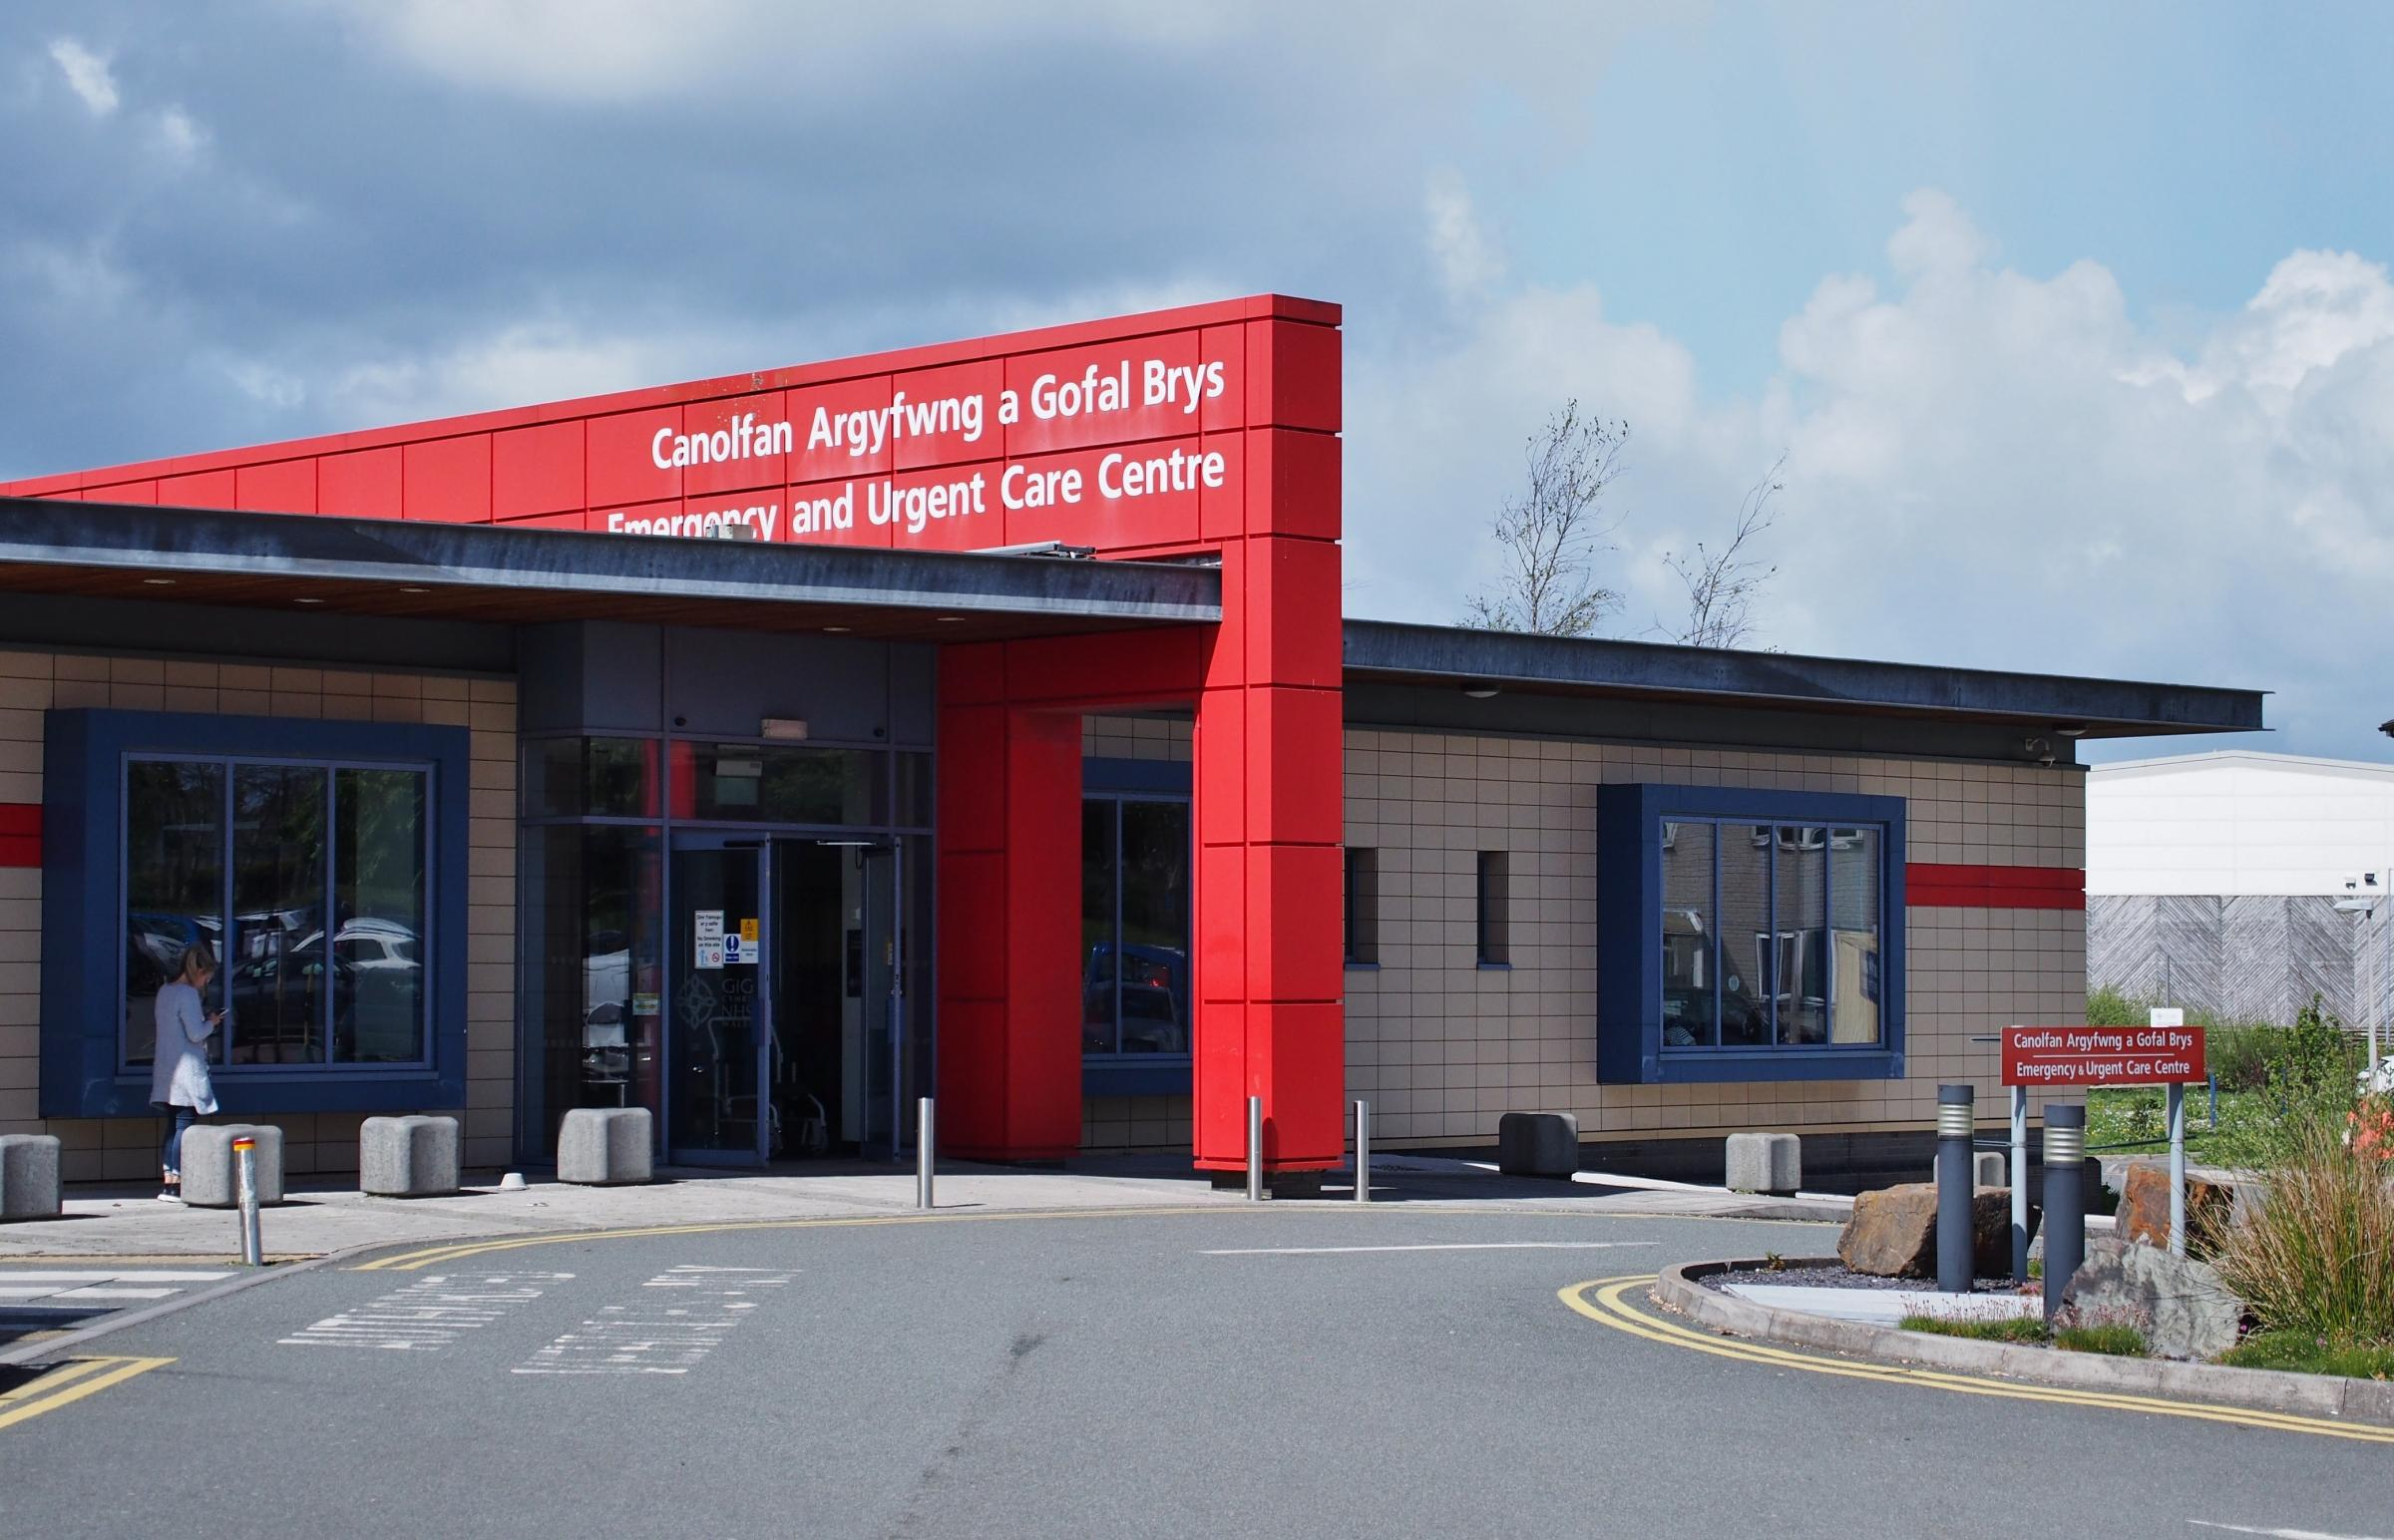 Withybush Hospital could lose its A&E service under Hywel Dda's shake-up plans